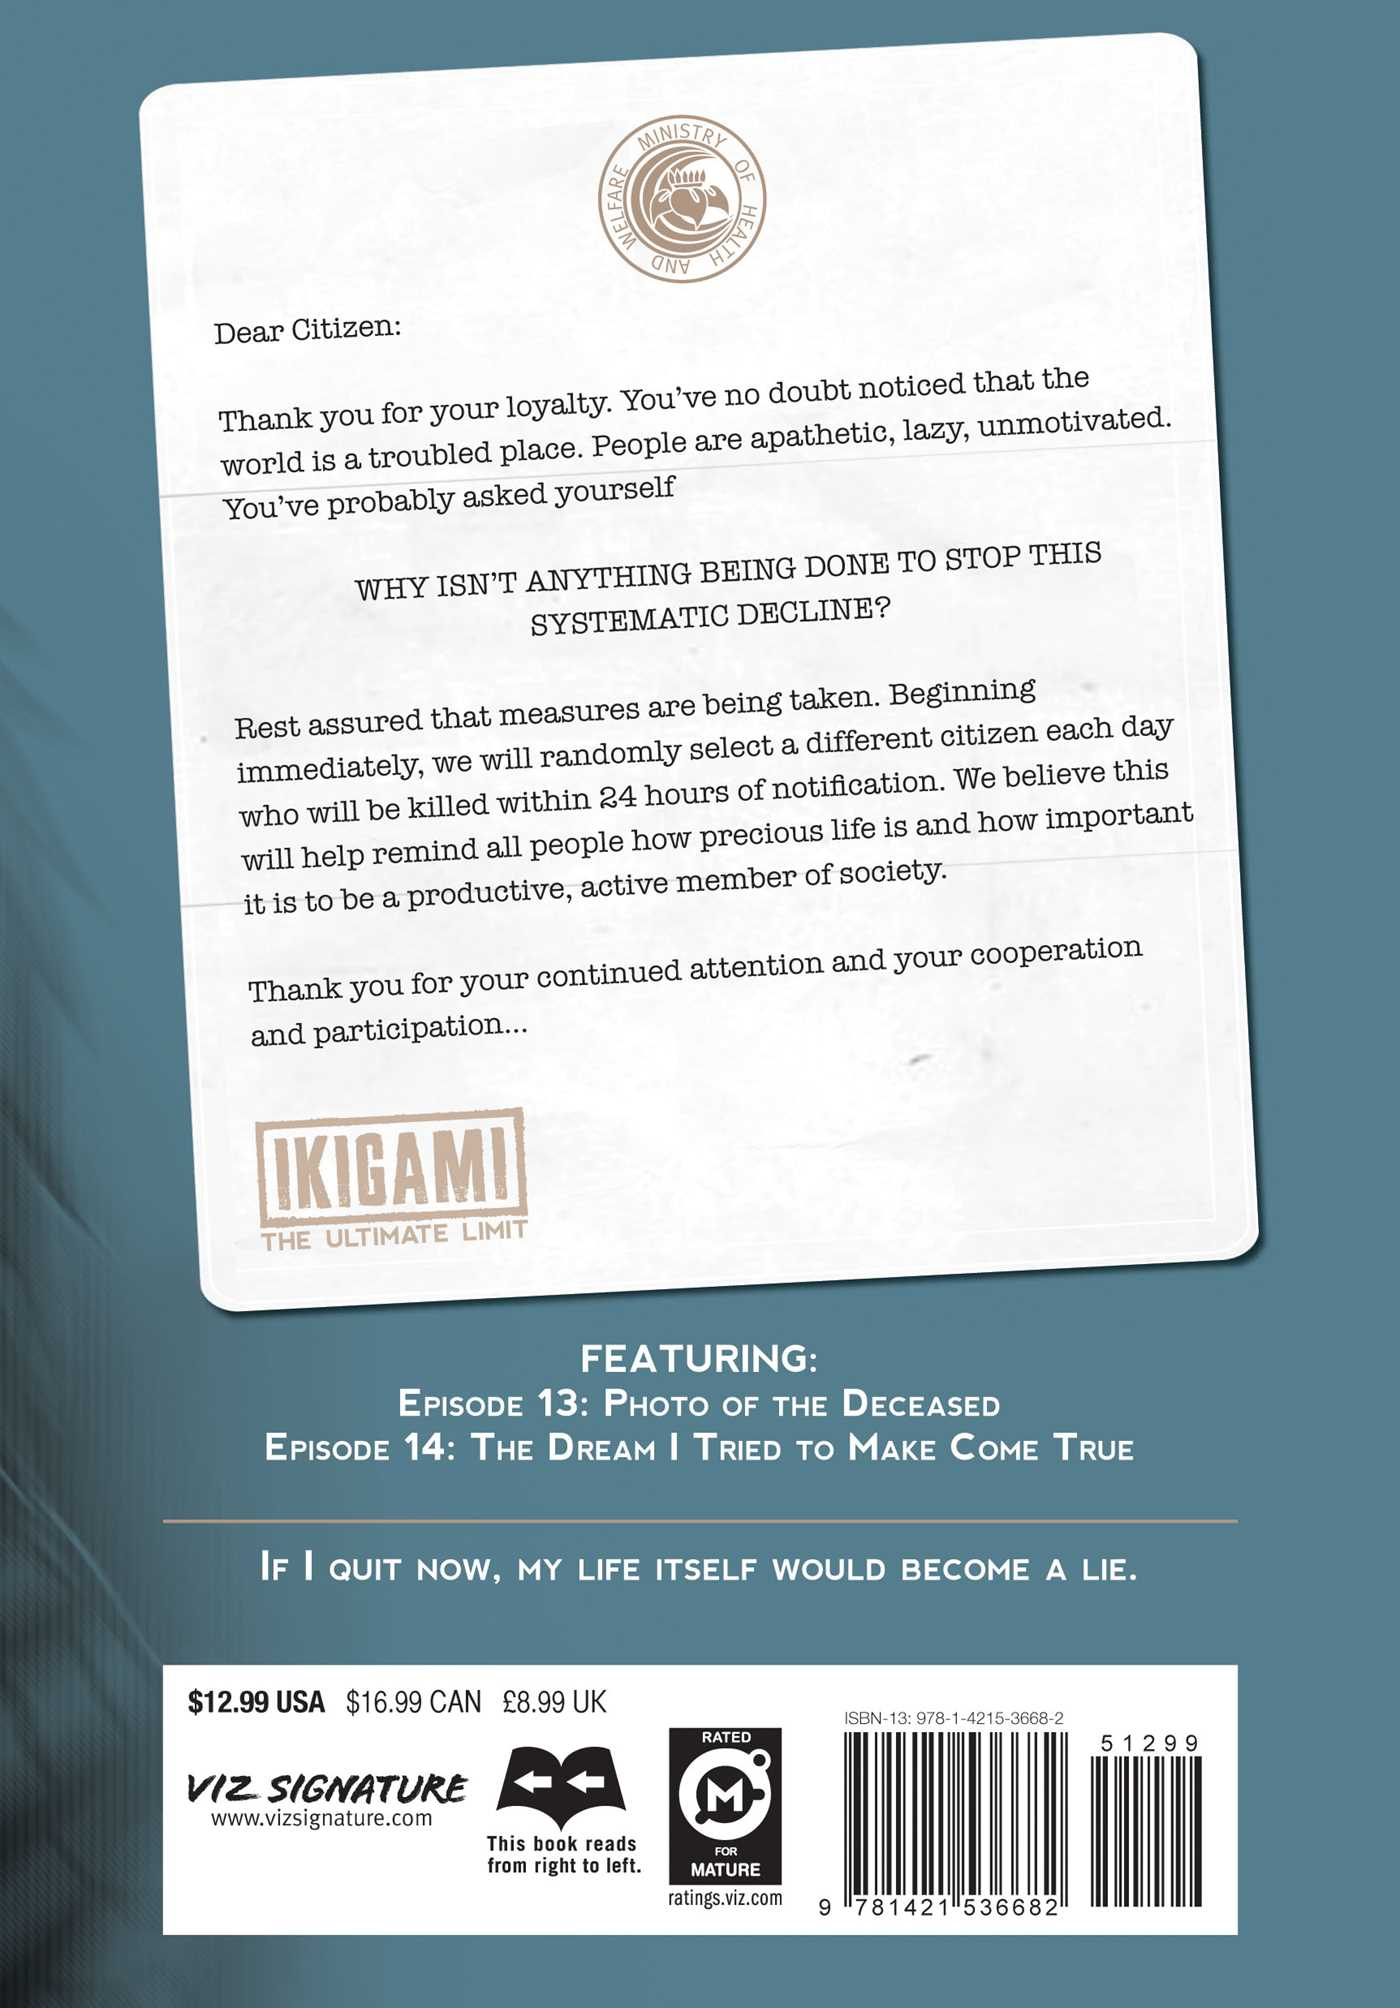 Ikigami the ultimate limit vol 7 9781421536682 hr back